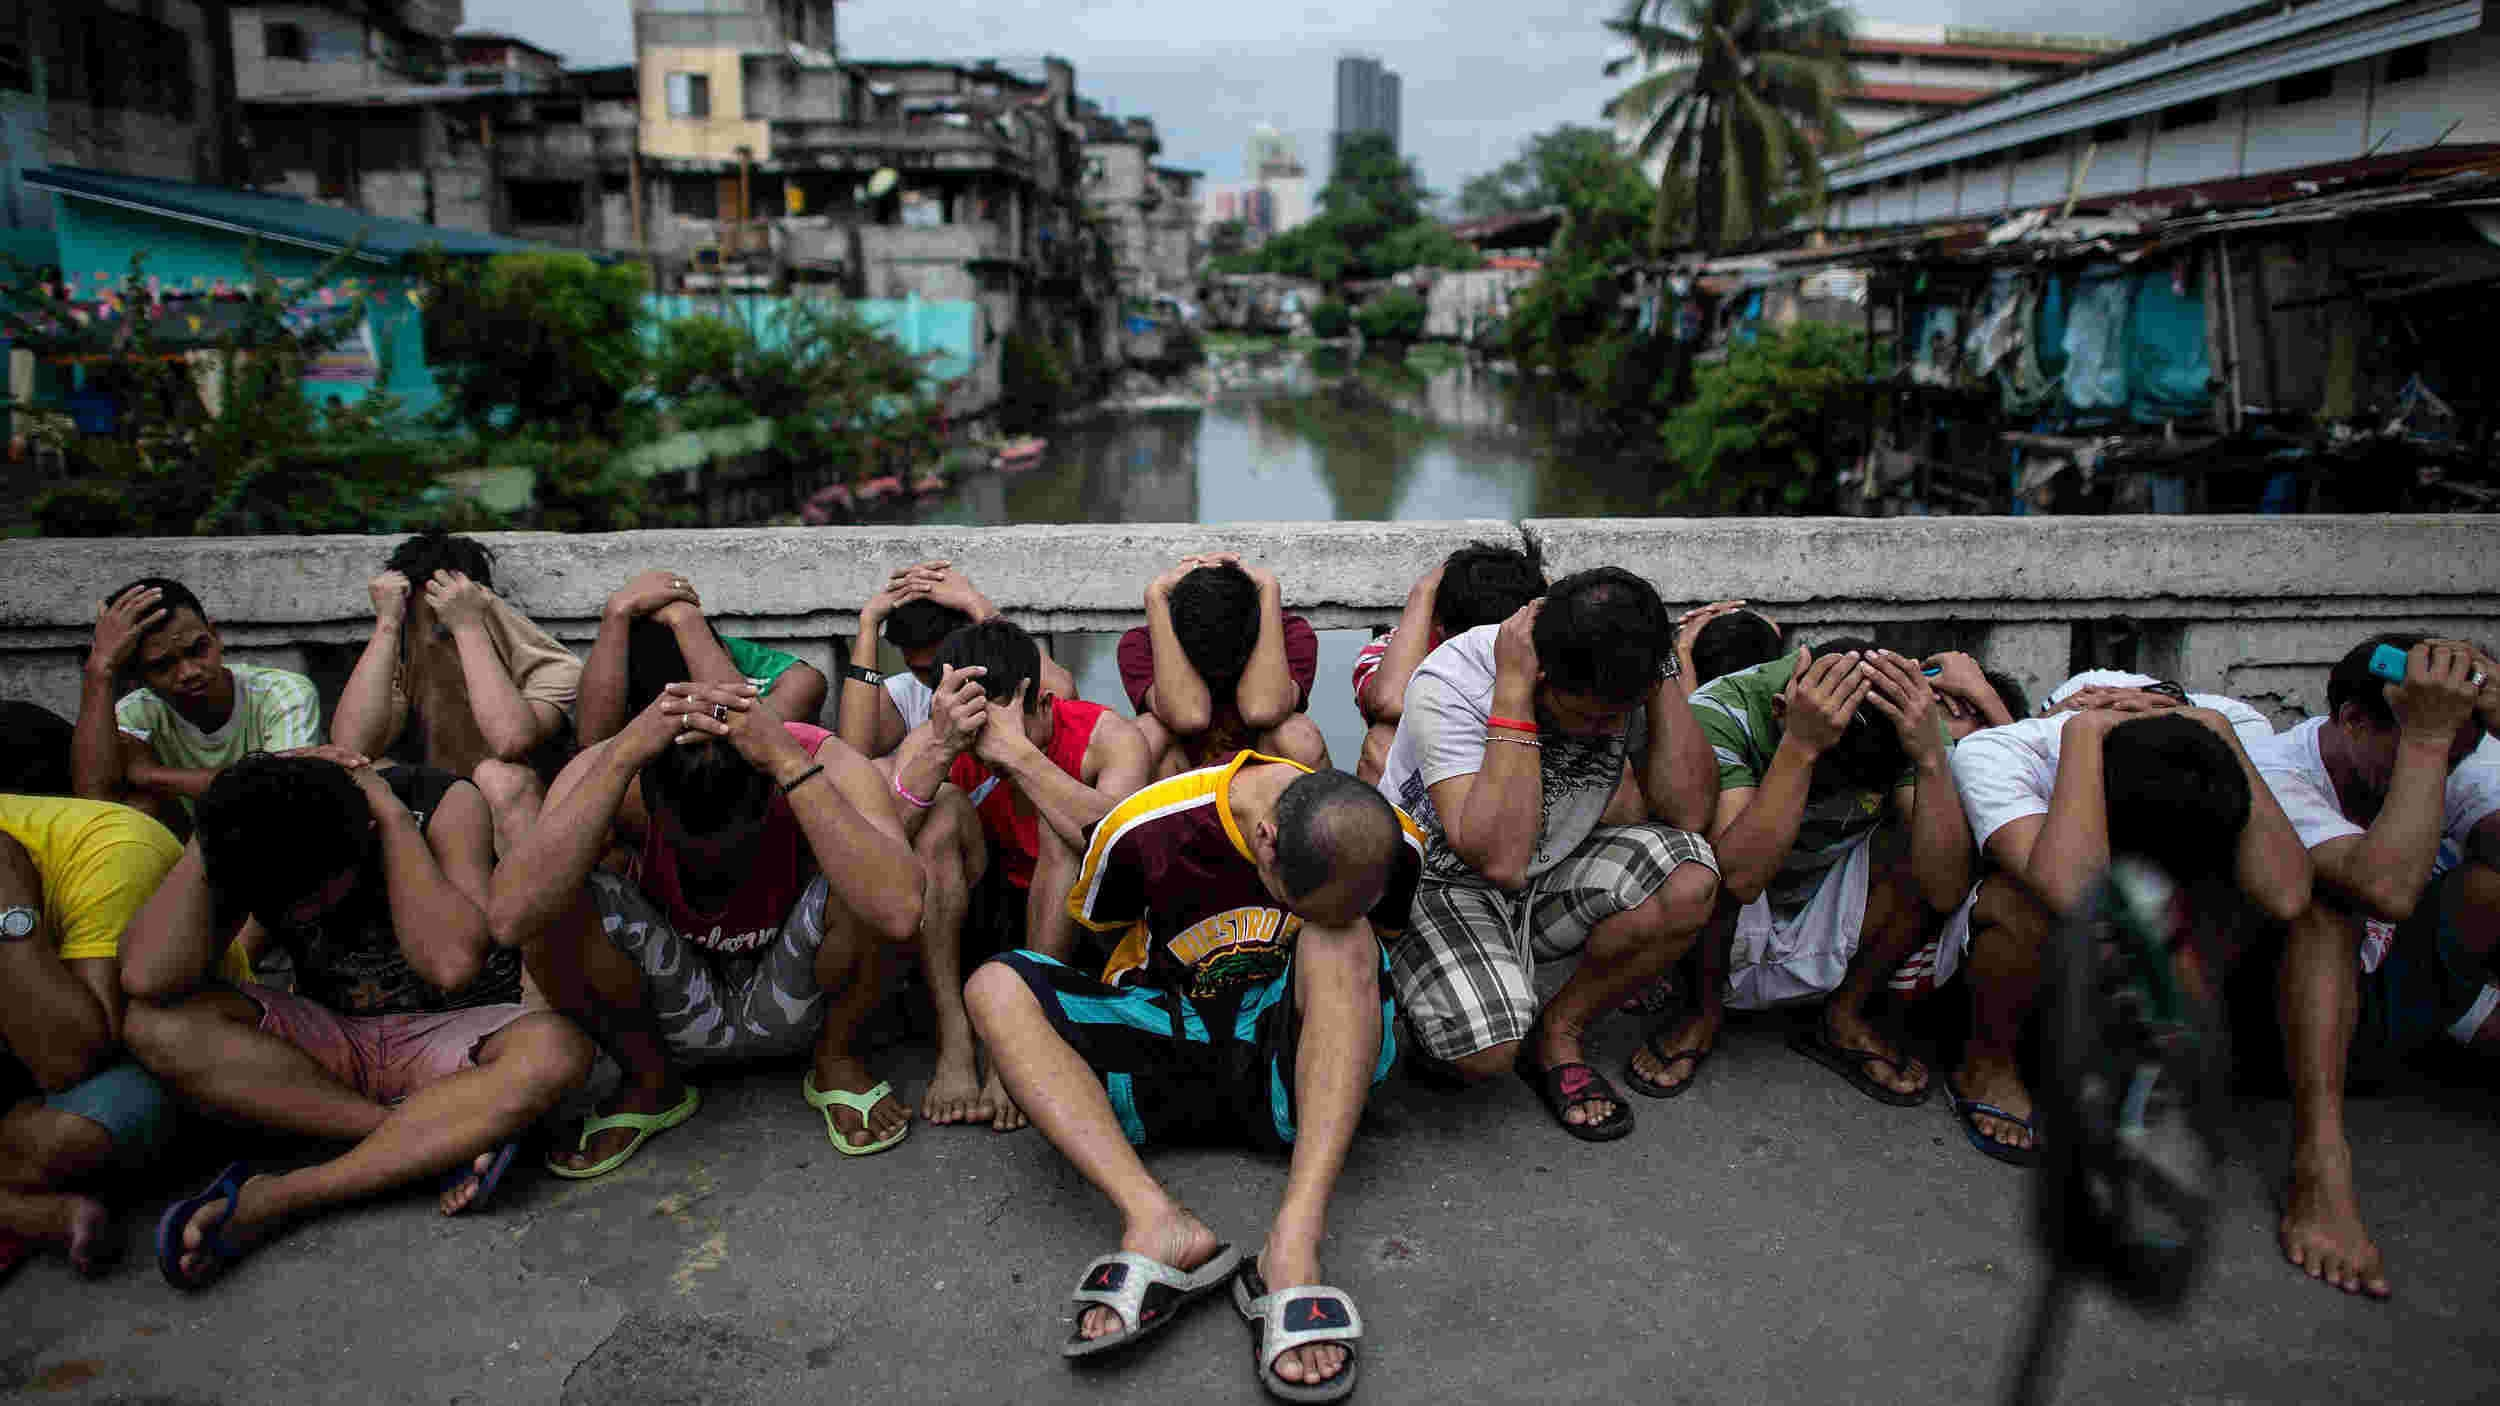 Over 220,000 suspects netted in Philippine anti-drug campaign: authority